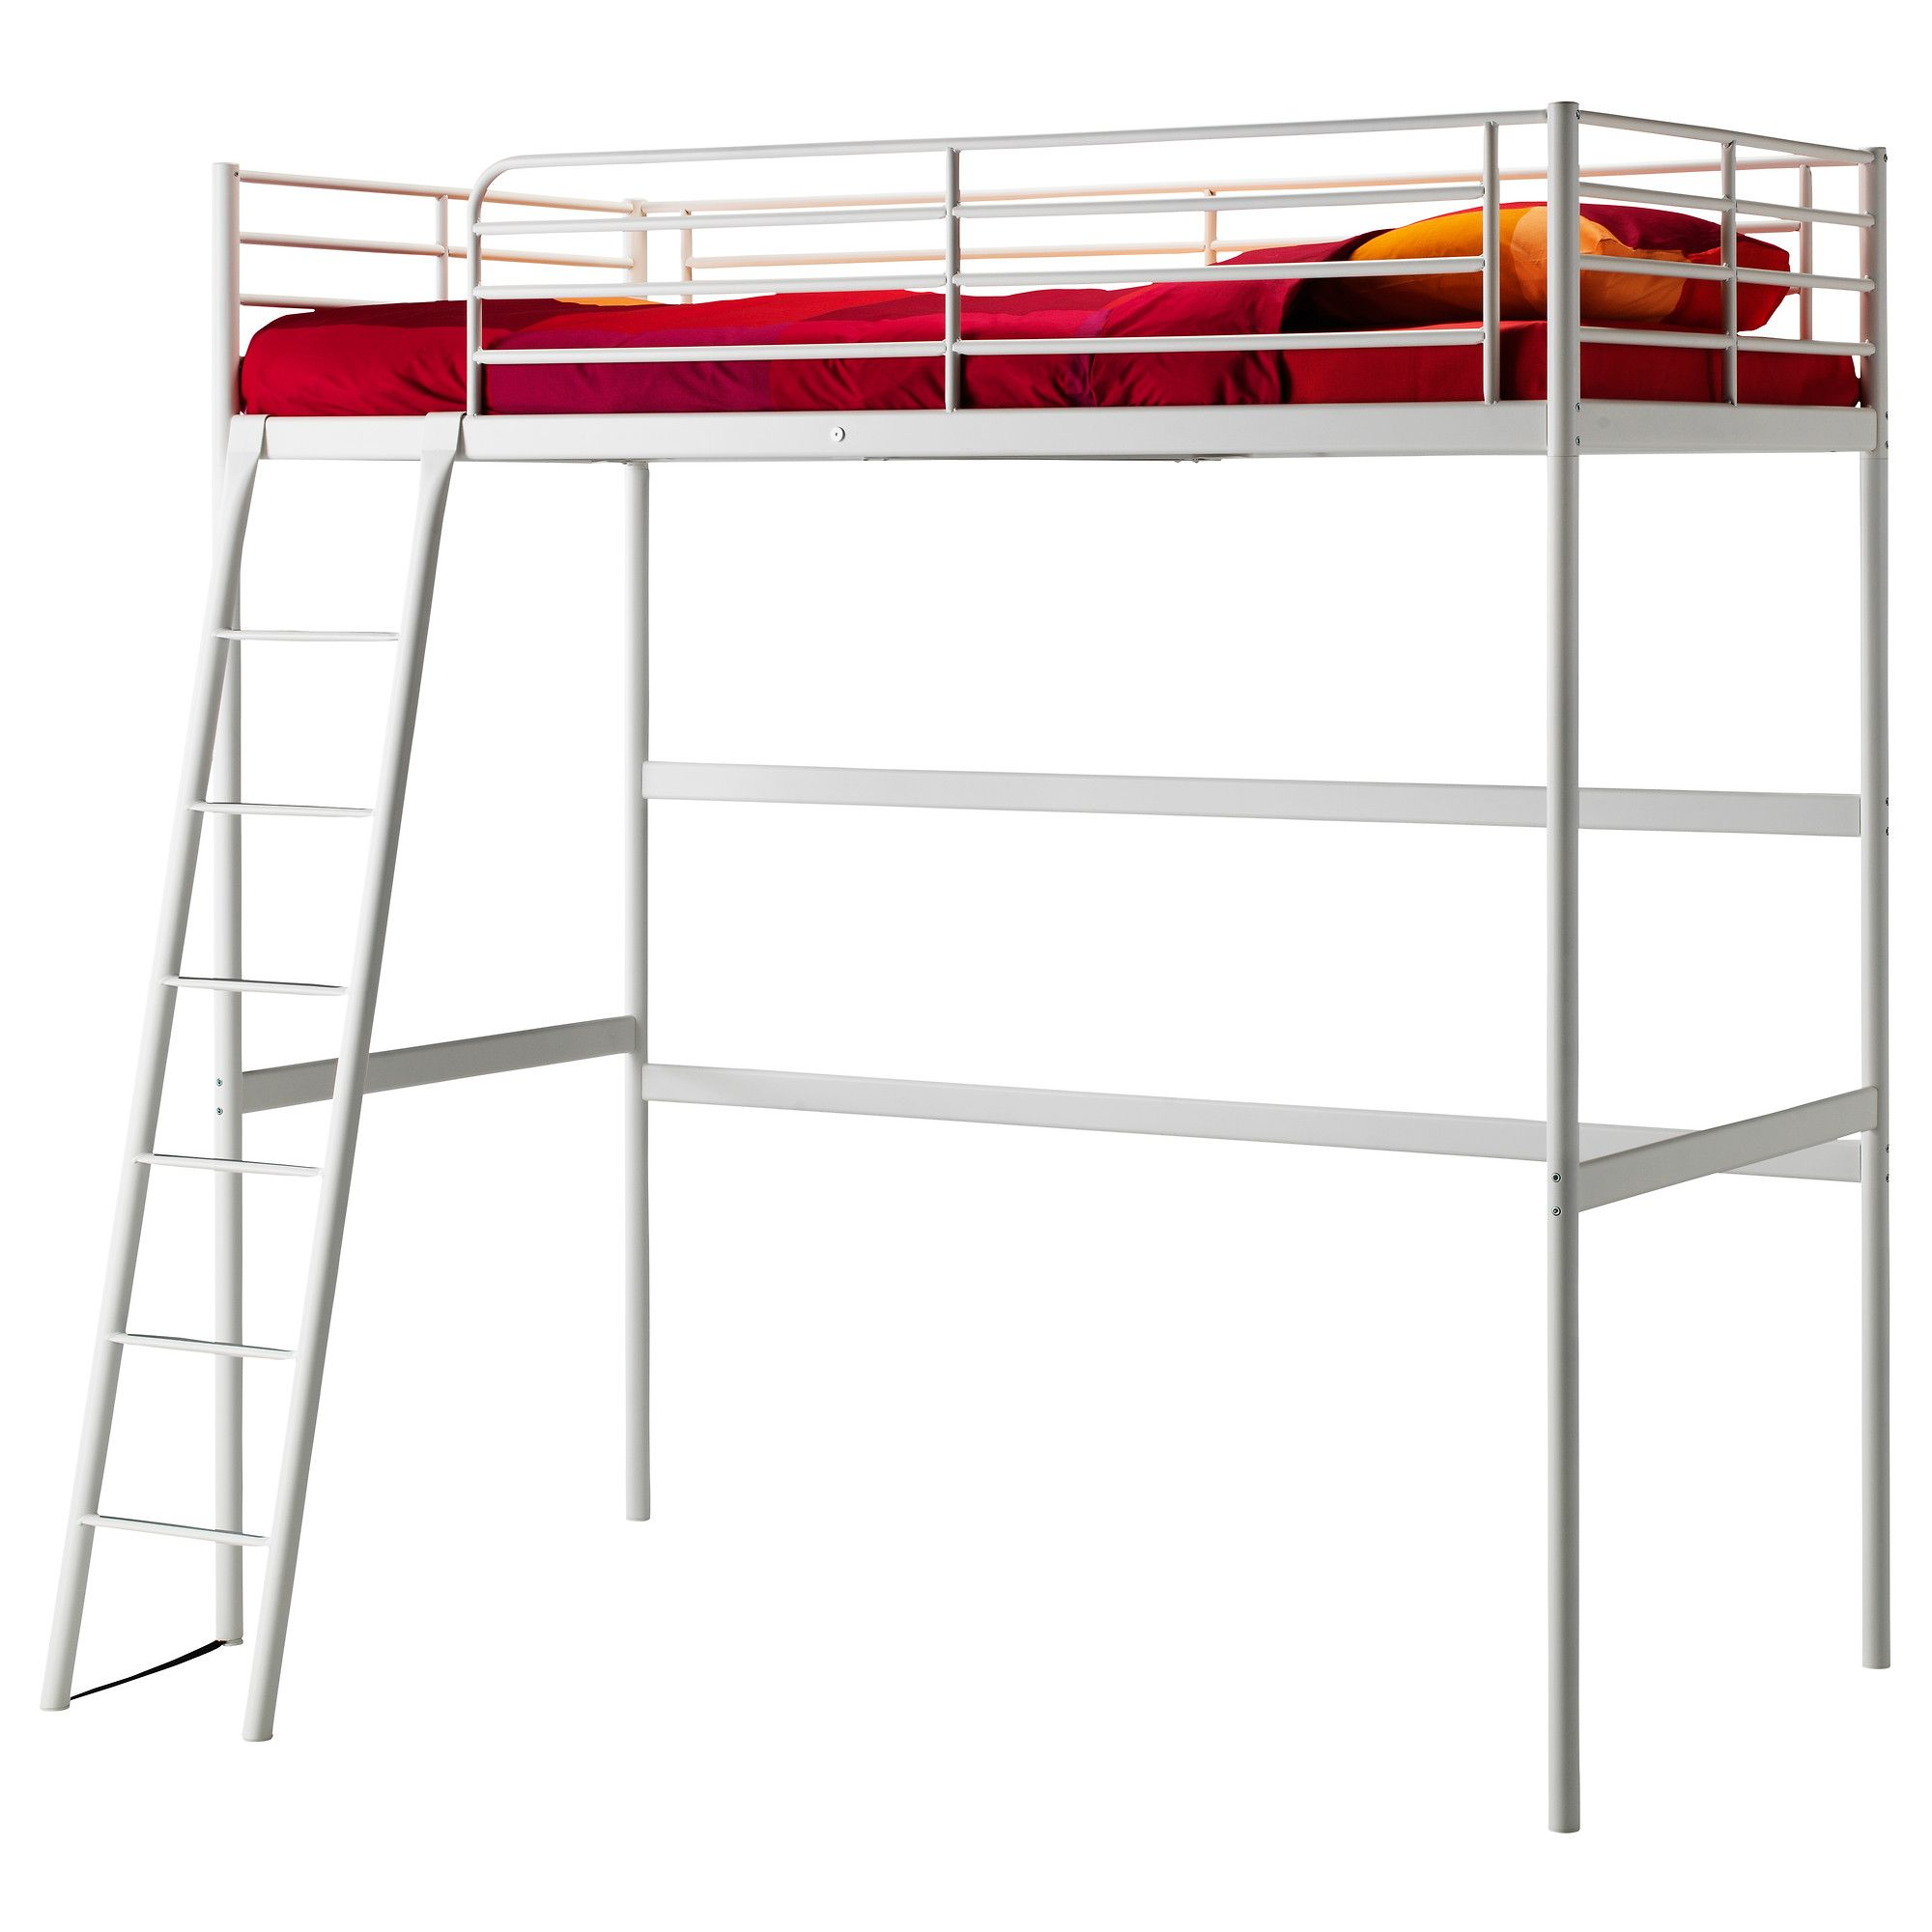 Tromso Loft Bed Frame Full Double Ikea 169 Diyds Loft Bed